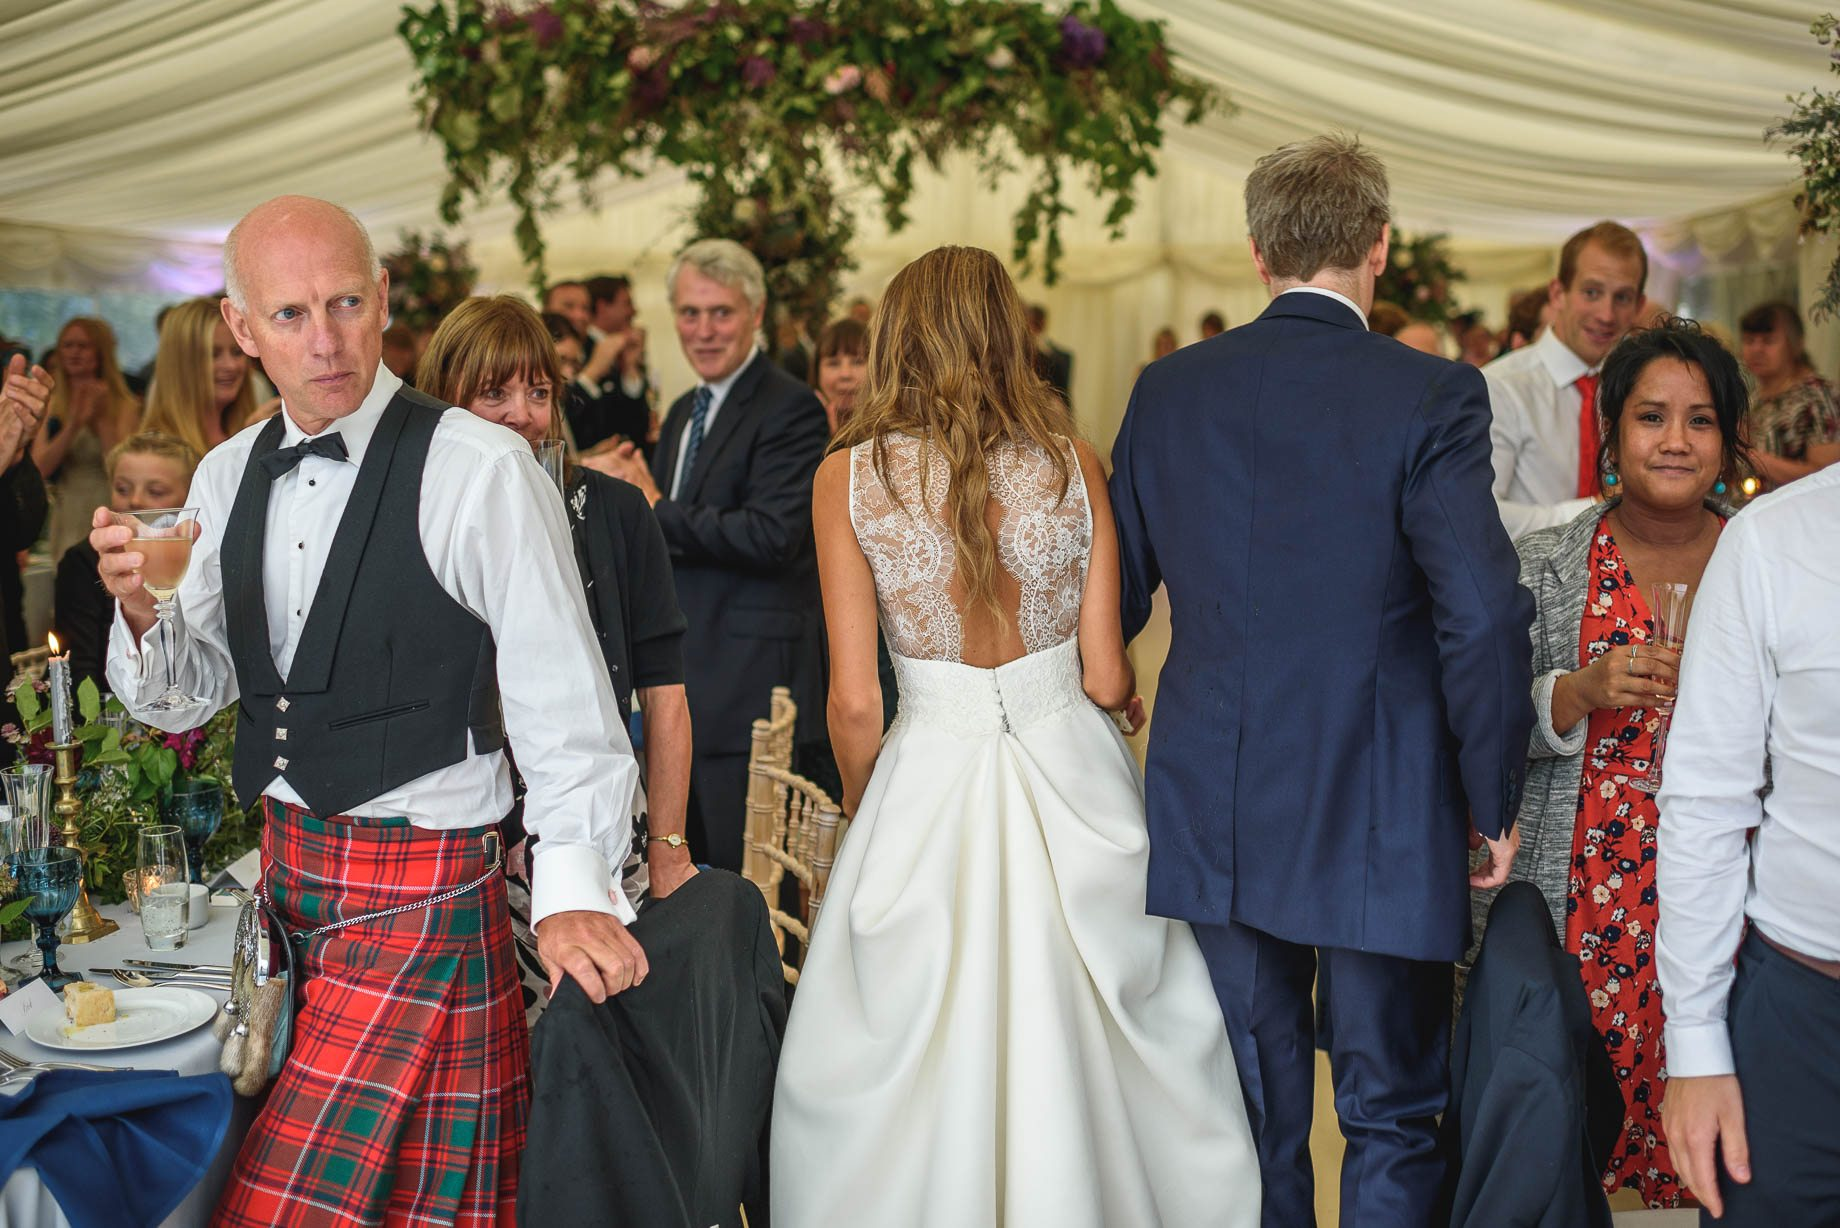 surrey-wedding-photography-guy-collier-photography-claire-and-tom-170-of-227